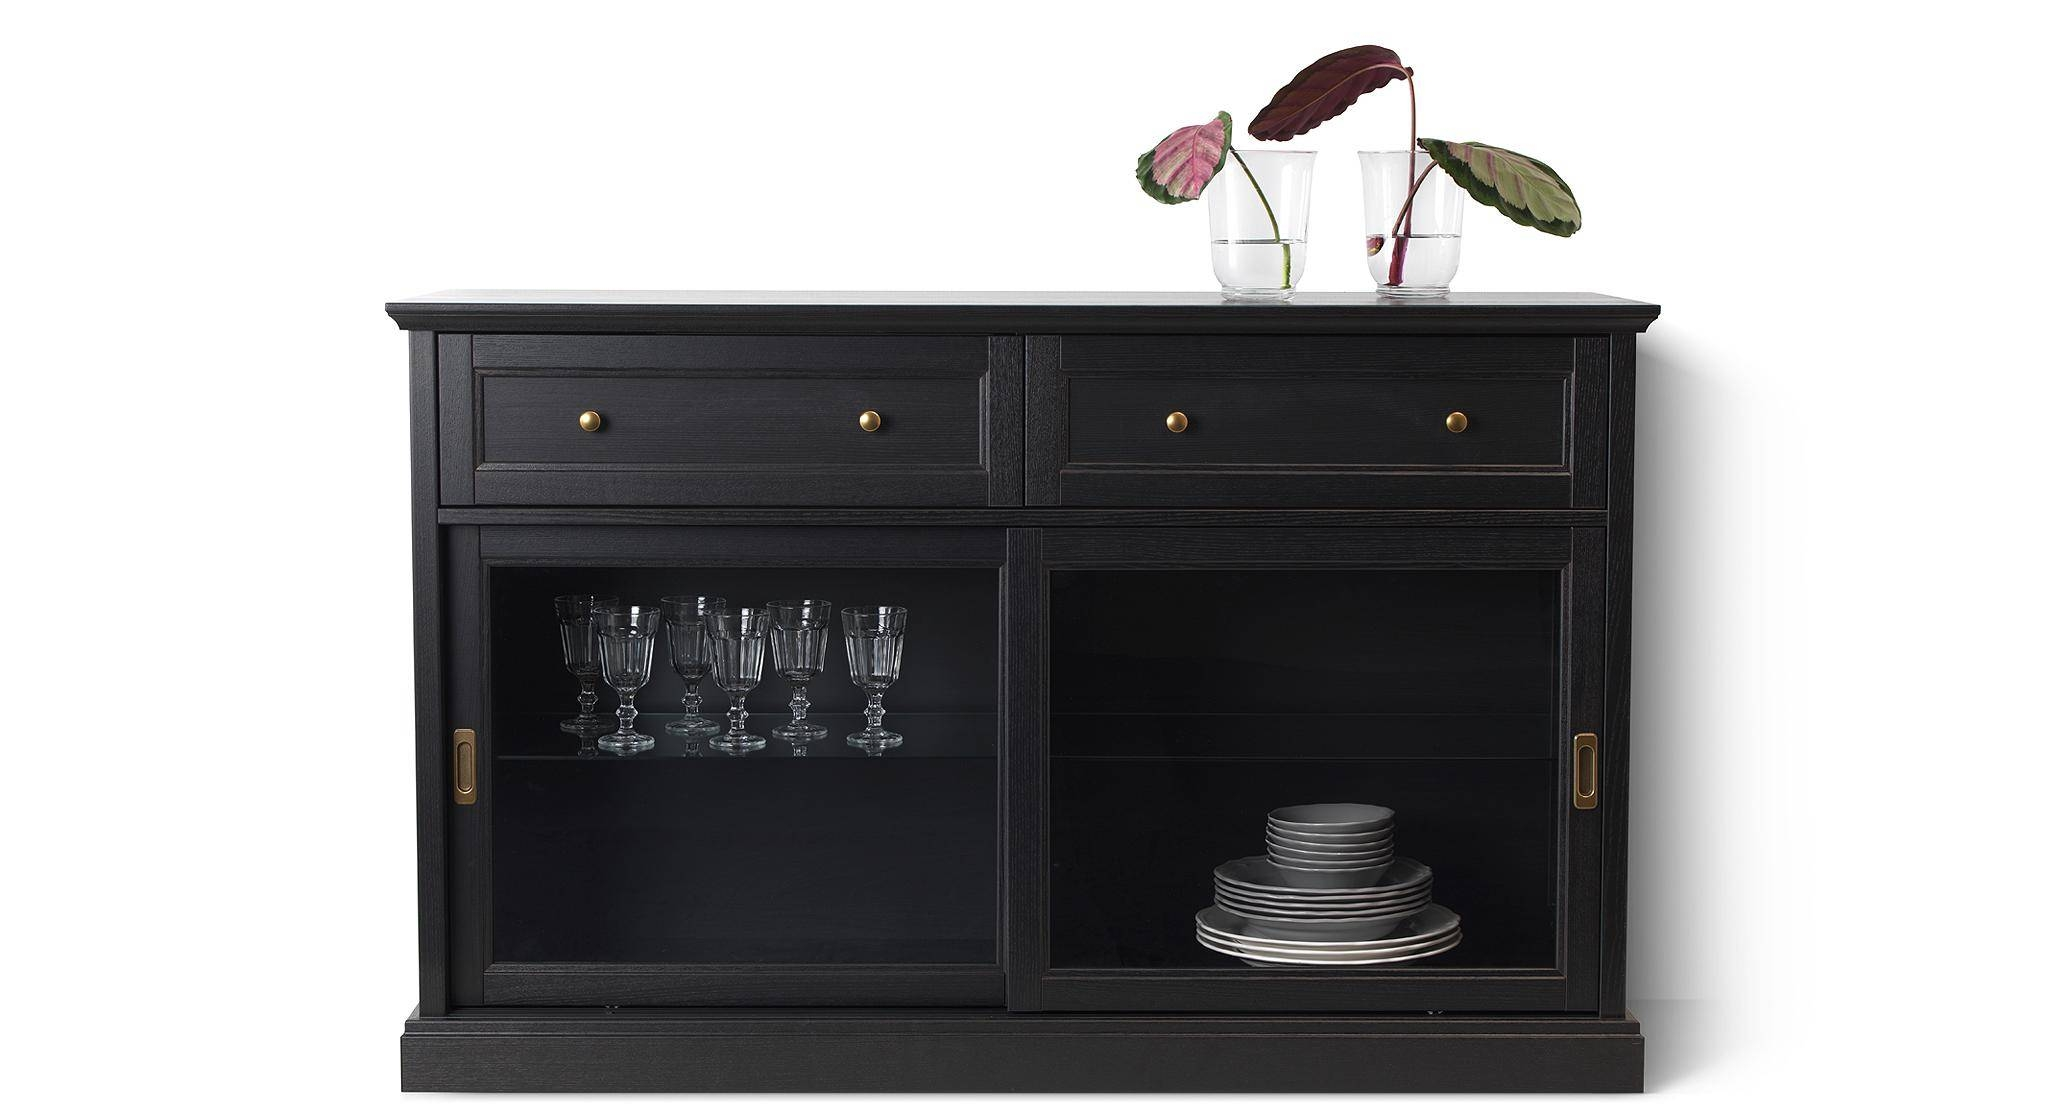 Storage Cabinets & Storage Cupboards | Ikea Ireland Intended For Sideboards With Glass Doors And Drawers (View 15 of 15)